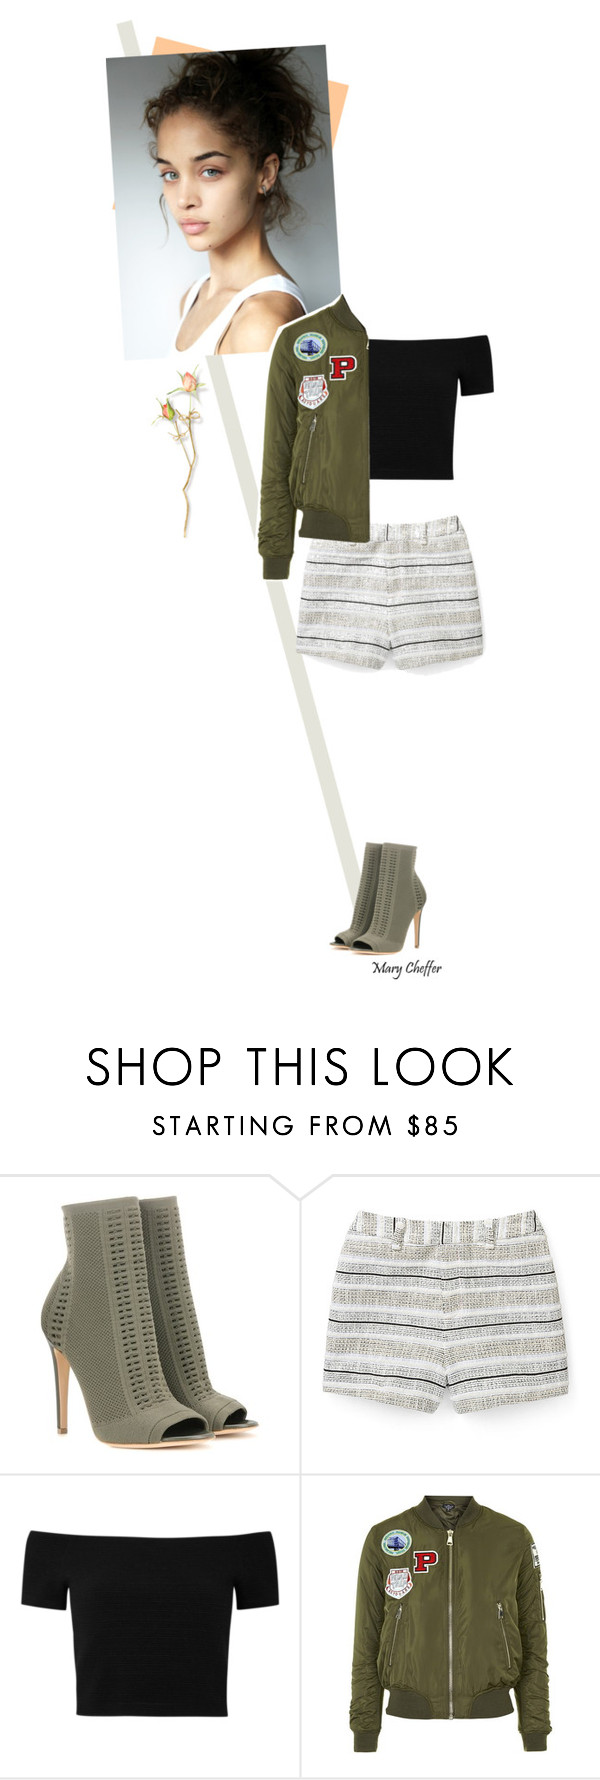 """""""There's no stopping the wind."""" by mcheffer ❤ liked on Polyvore featuring Gianvito Rossi, Rebecca Minkoff, Alice + Olivia, Sanders and Topshop"""